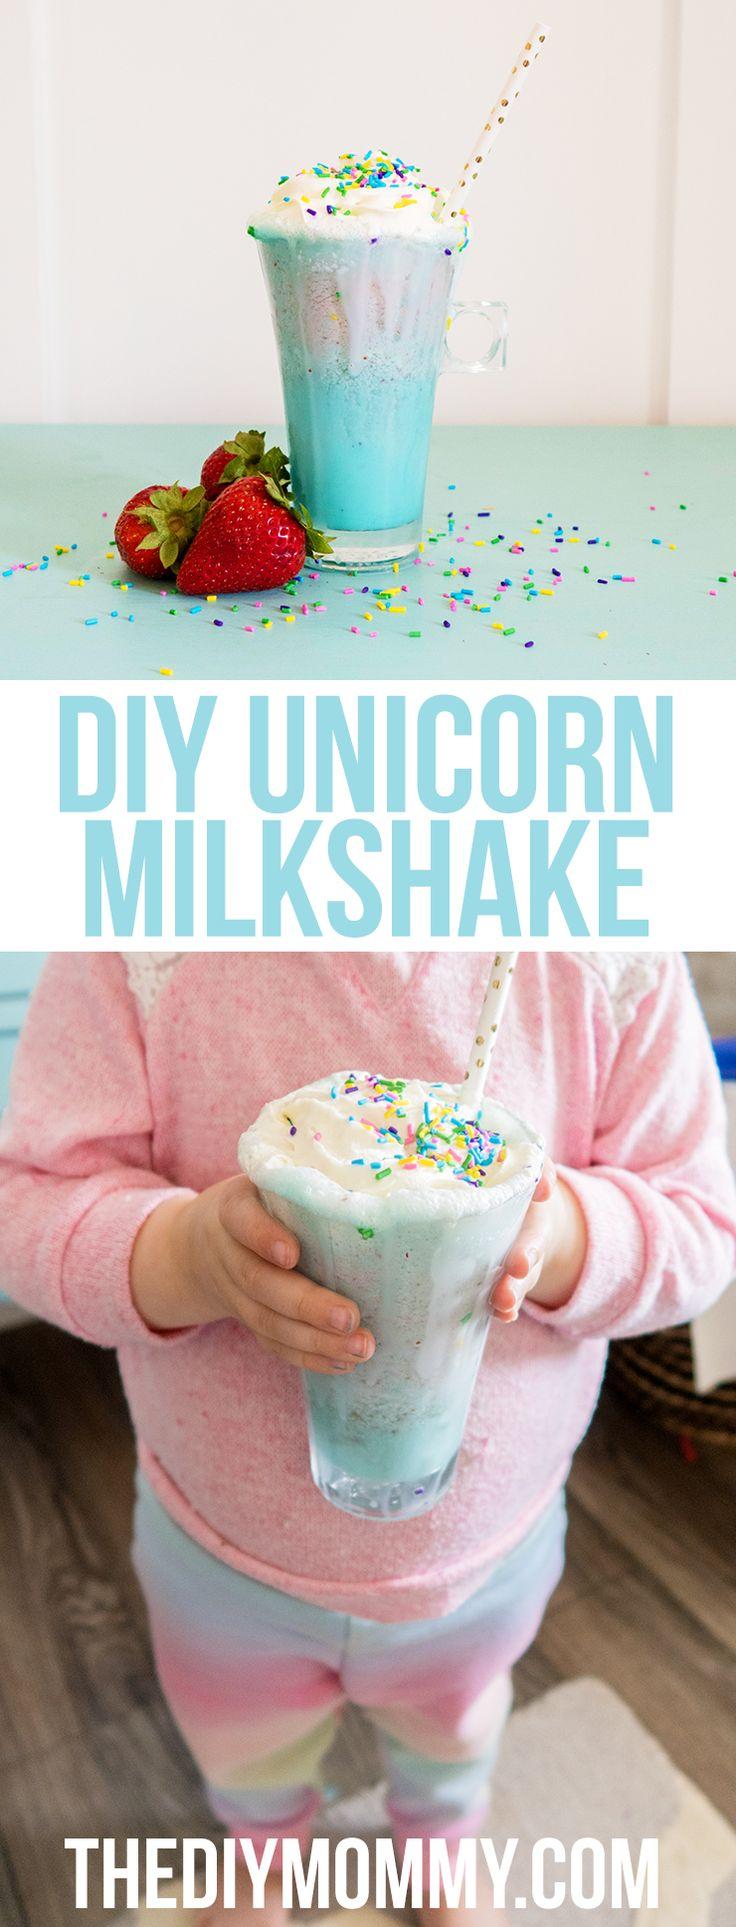 So easy and fun! DIY unicorn milkshake recipe with video tutorial